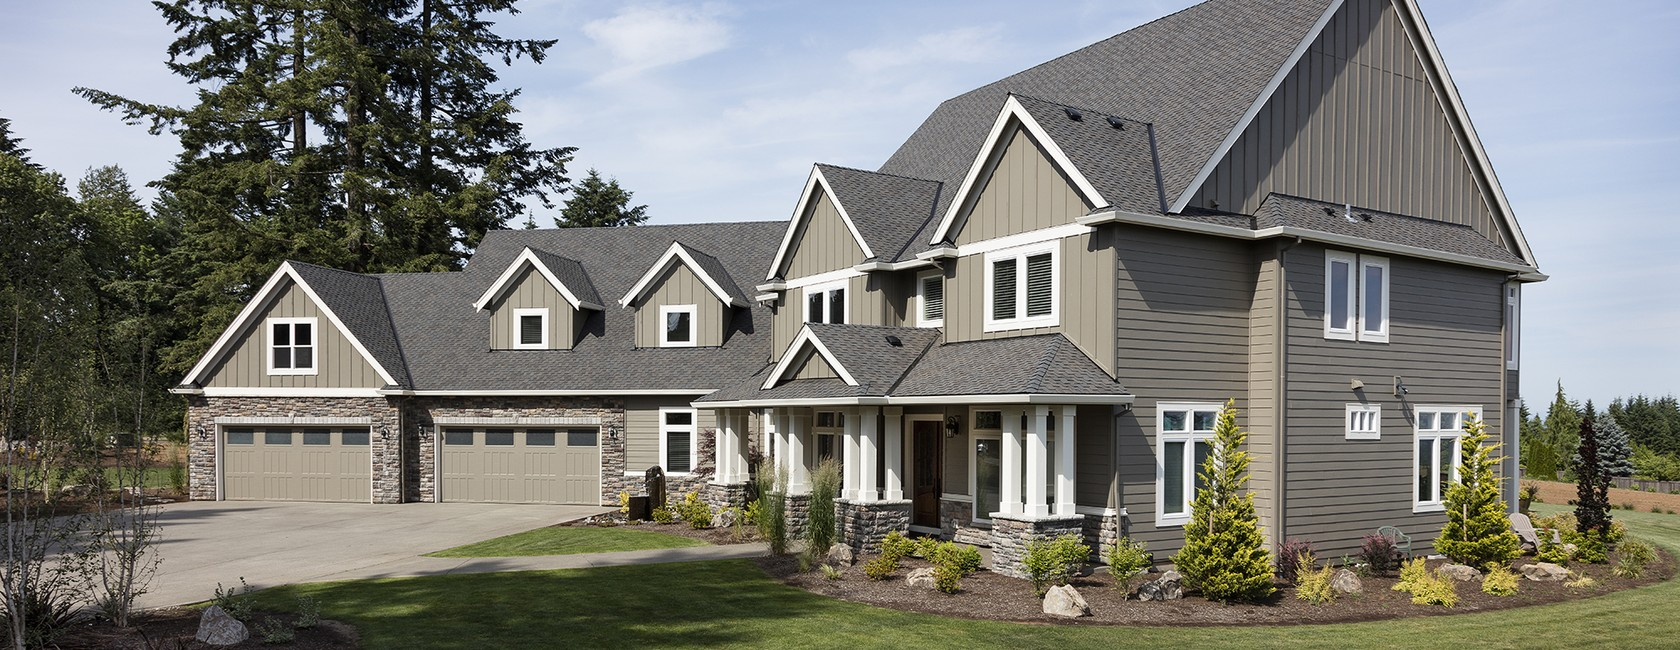 House Plans and ustom Home Design Services - ^